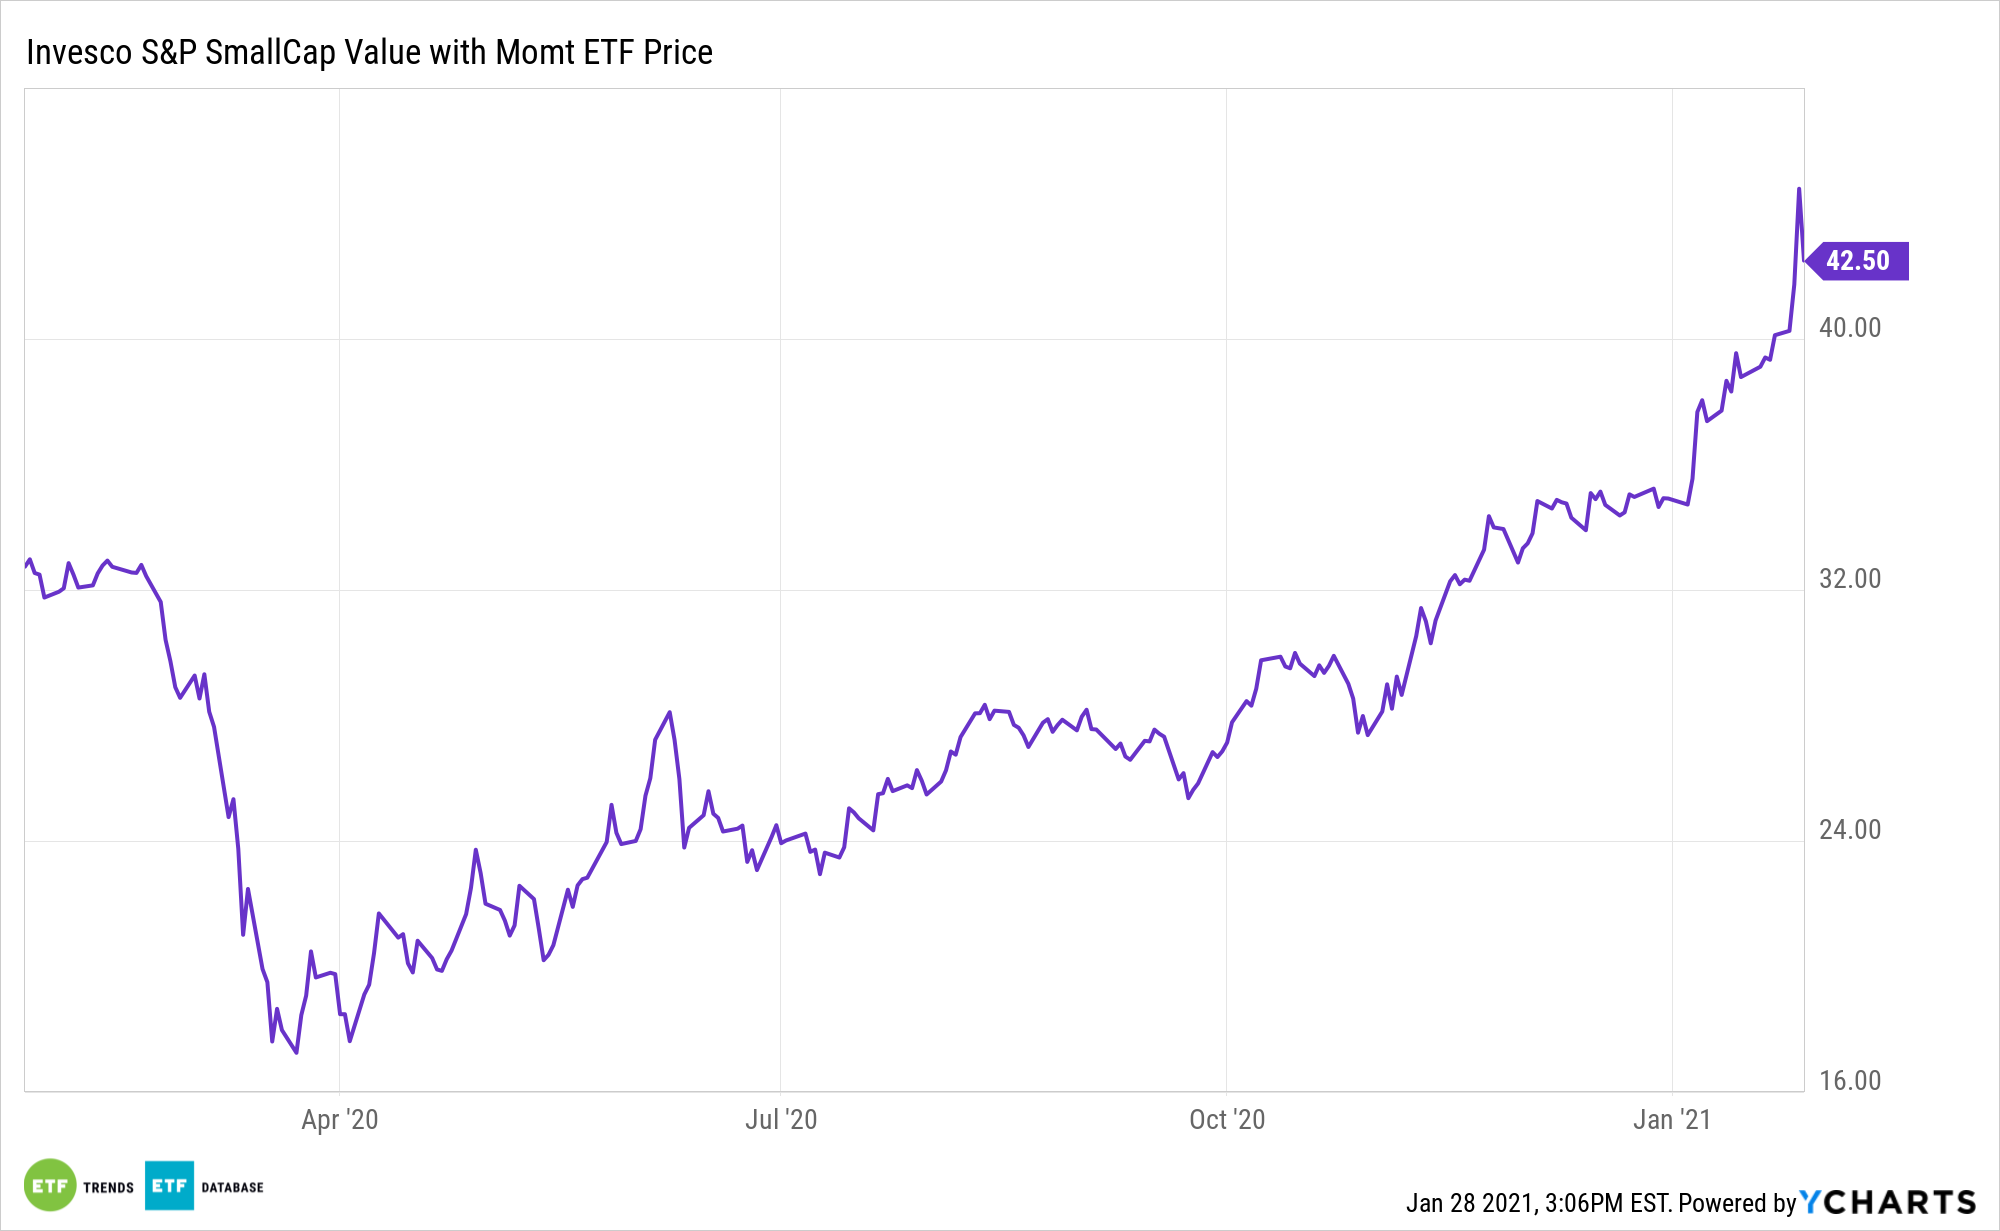 XSVM 1 Year Performance